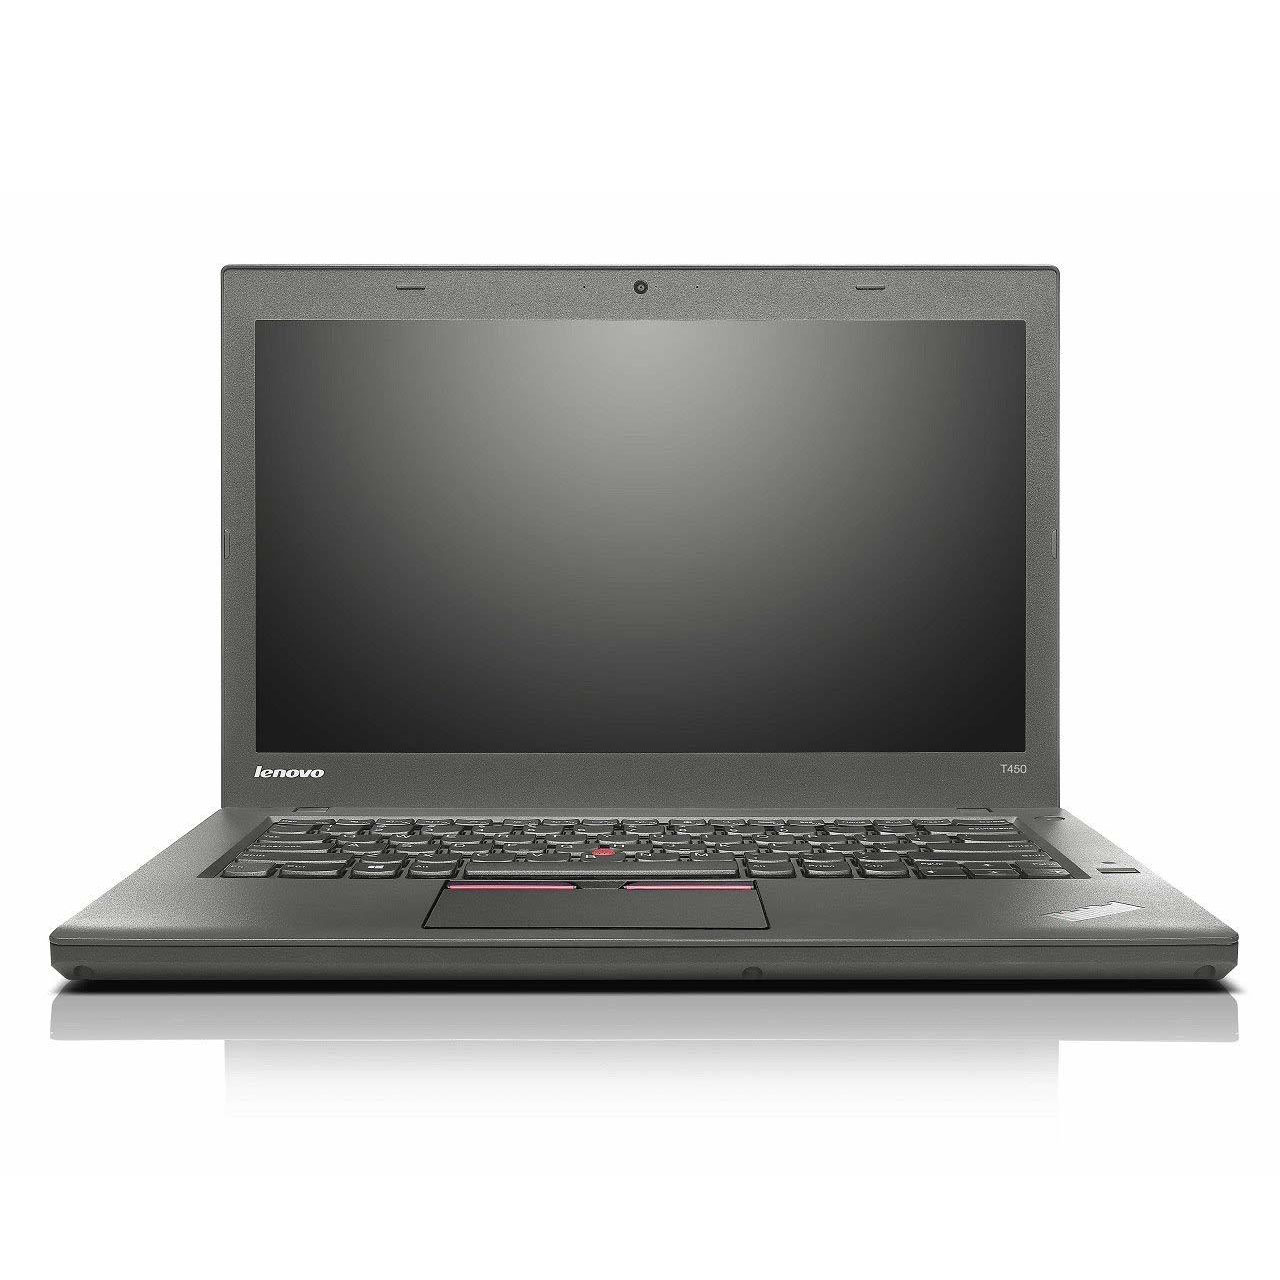 Lenovo Thinkpad T450 Core i5-5300U/ RAM 8 GB/ SSD 256GB/ Intel HD Graphics 5500/ 14 inch